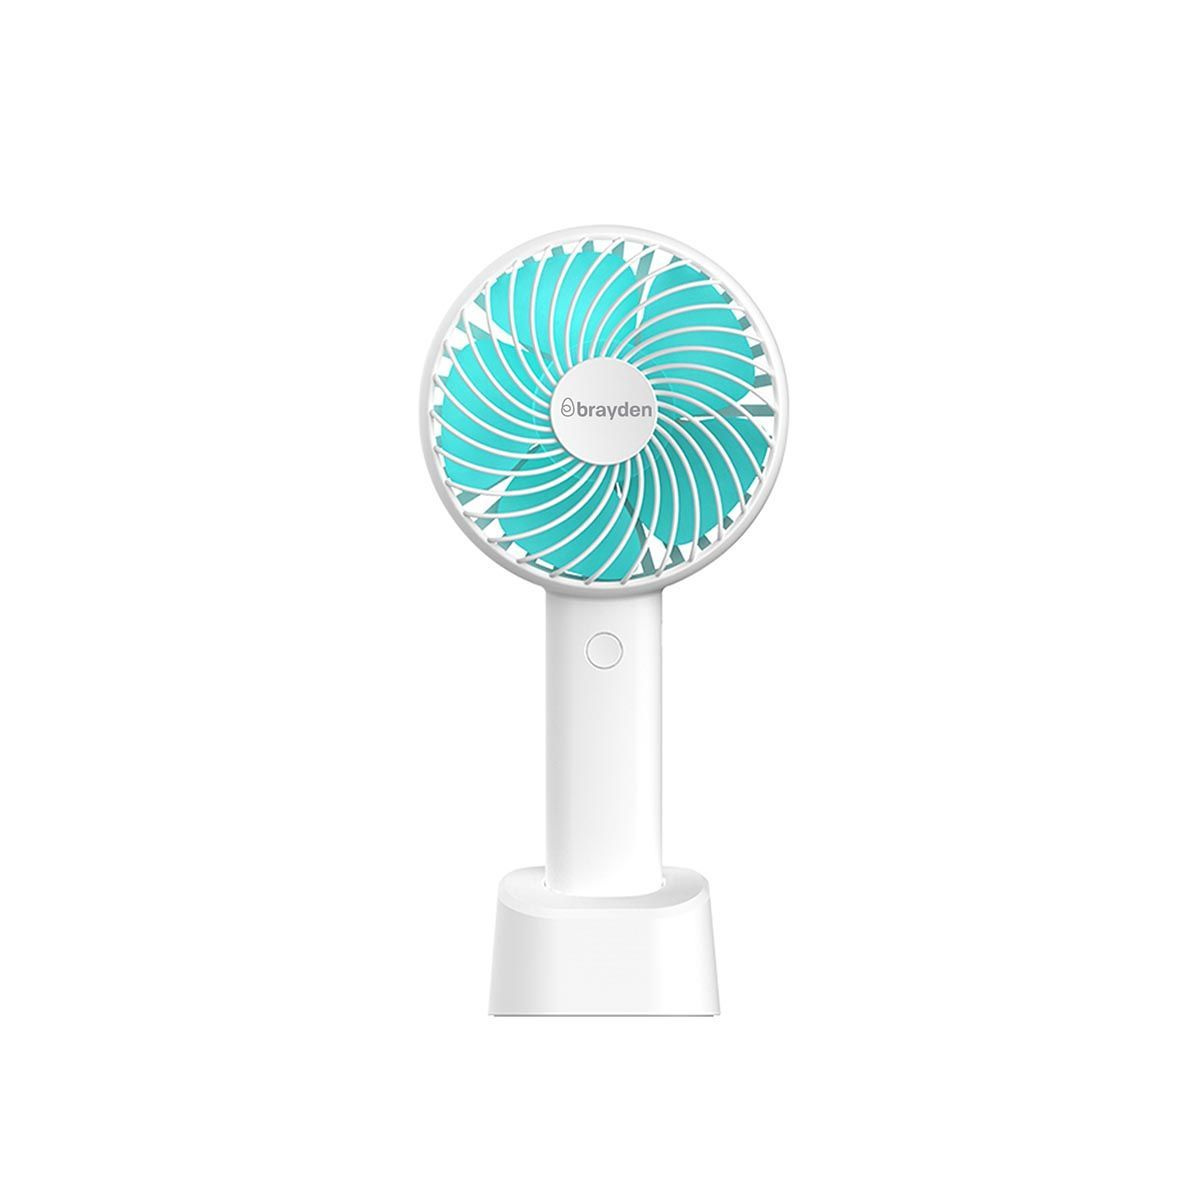 Brayden Airo F10 - Rechargeable Mini Fan(White)